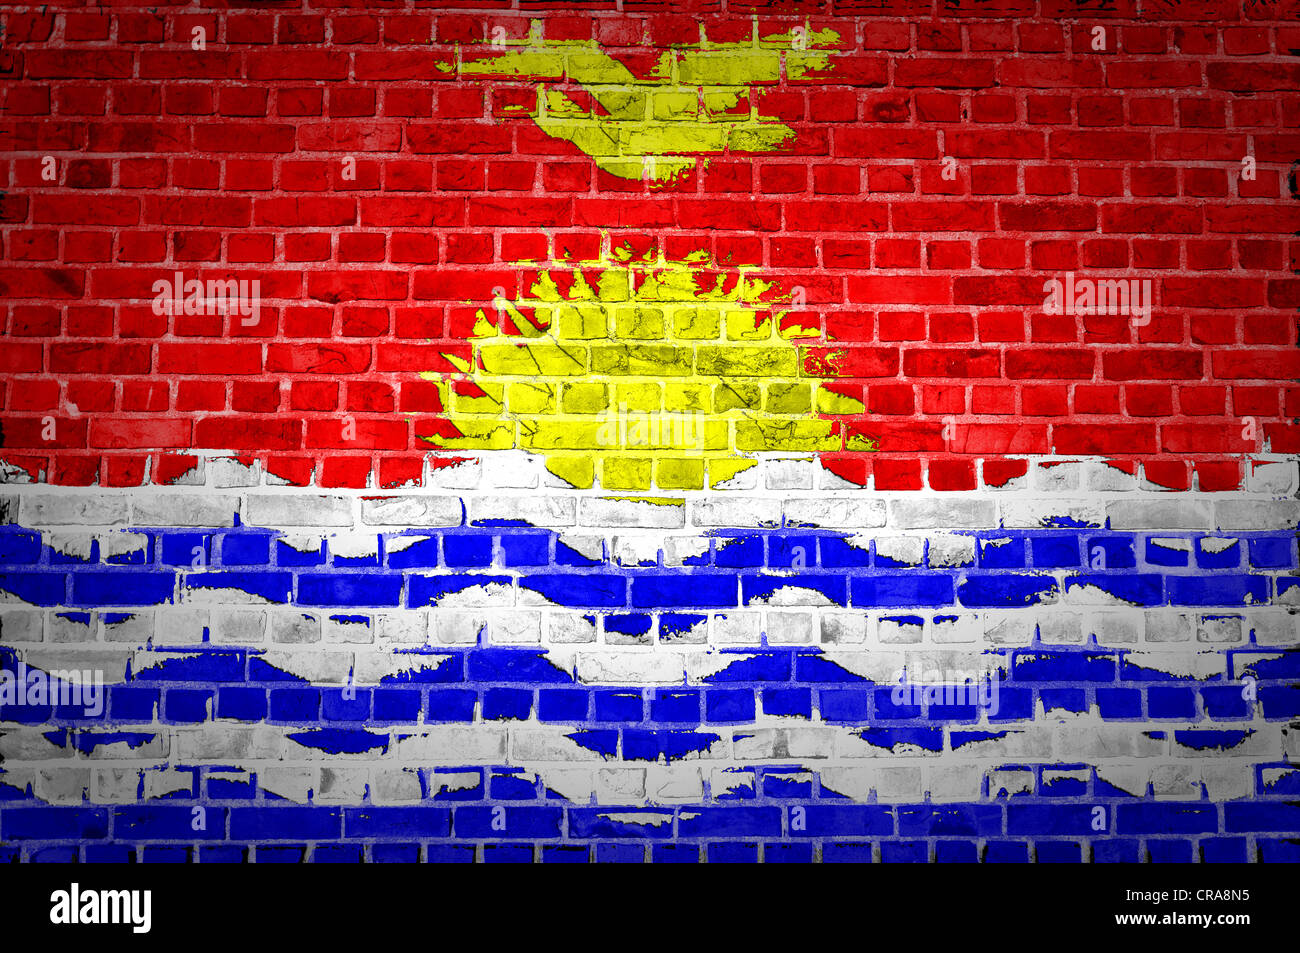 An image of the Kiribati flag painted on a brick wall in an urban location - Stock Image